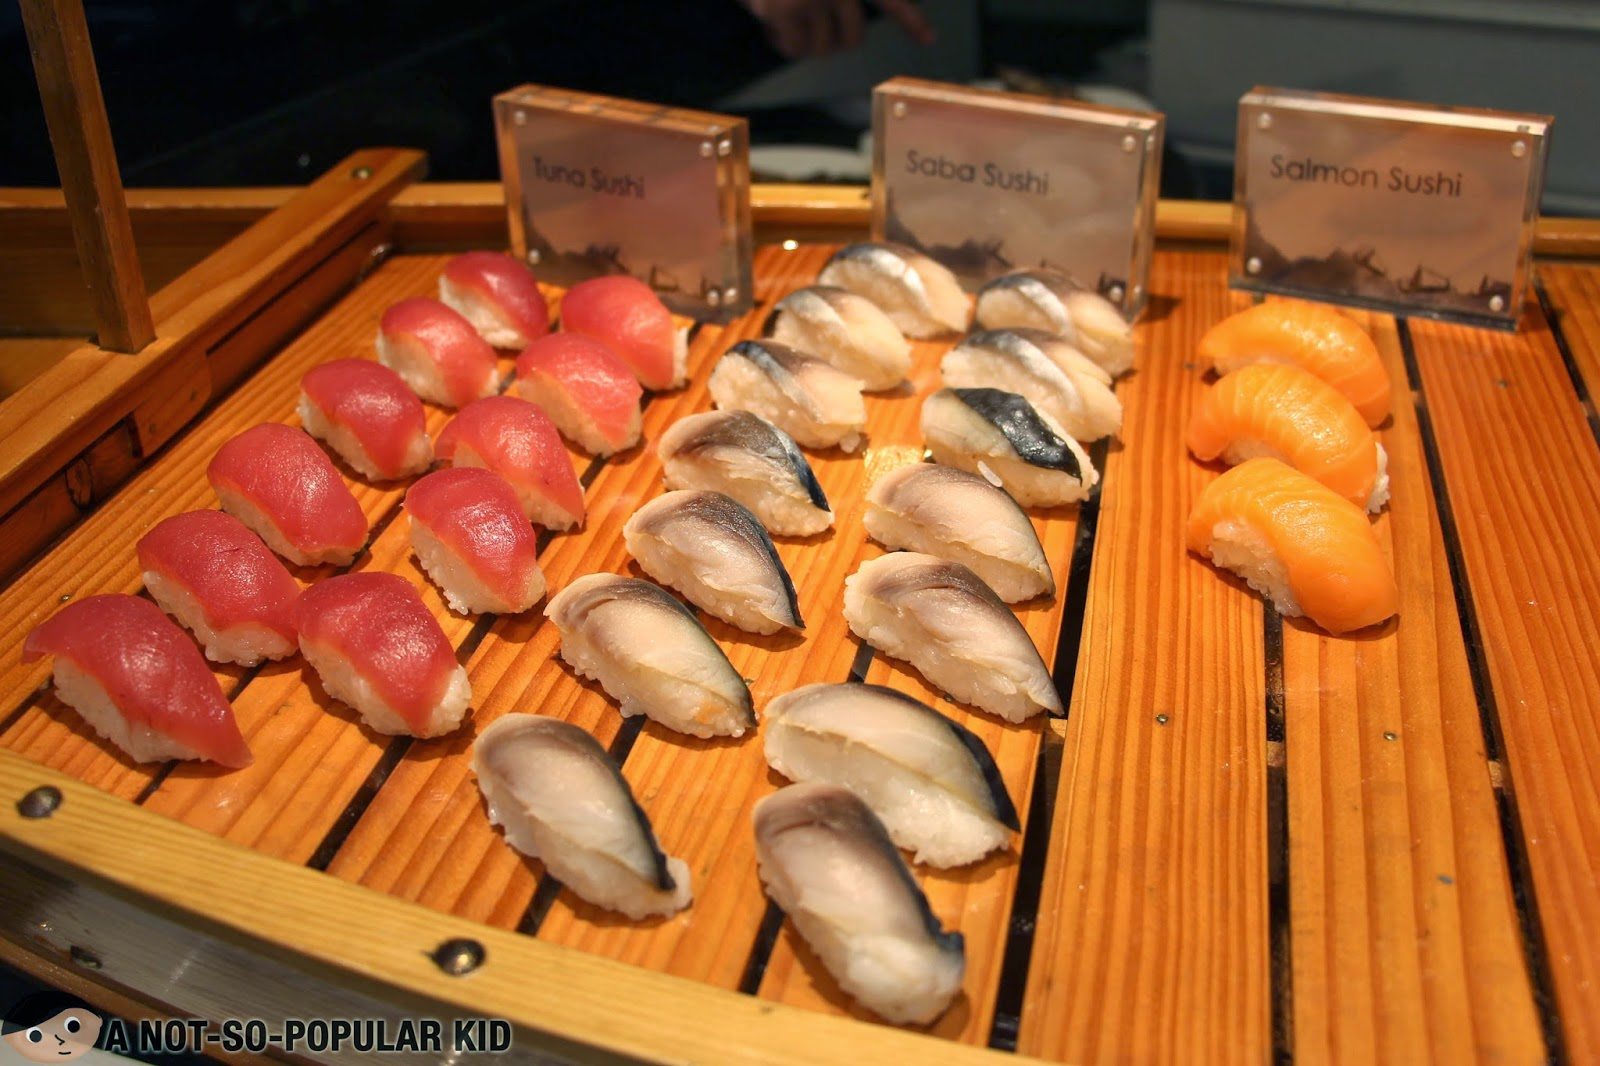 Tuna sushi, Saba Sushi and Salmon Sushi of Vikings